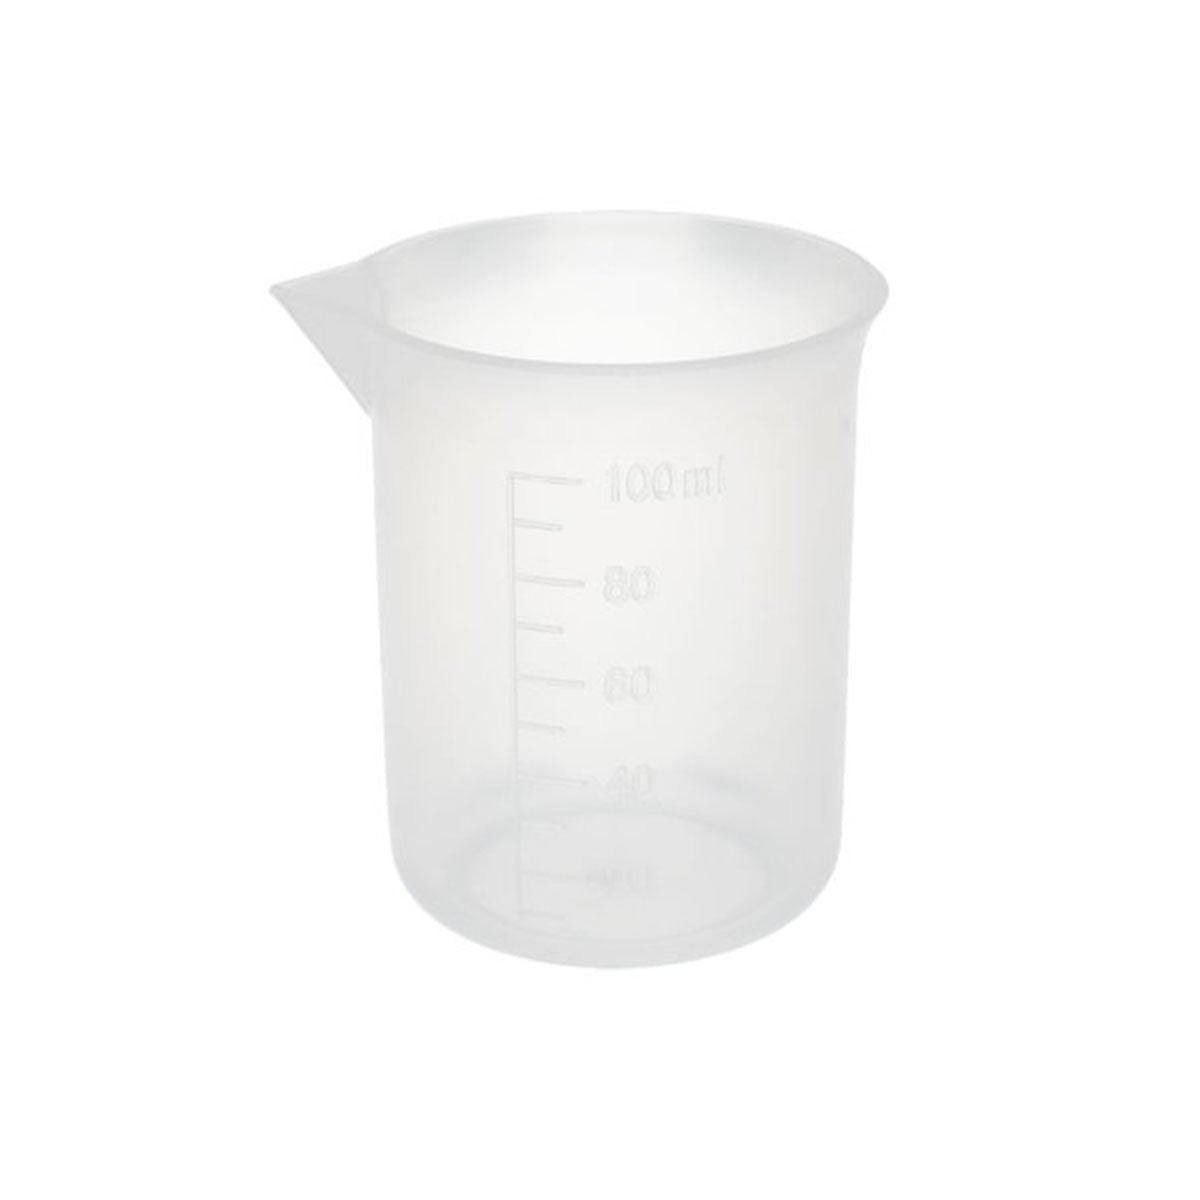 Measuring Beaker - 100ml - VapeBunkerUK